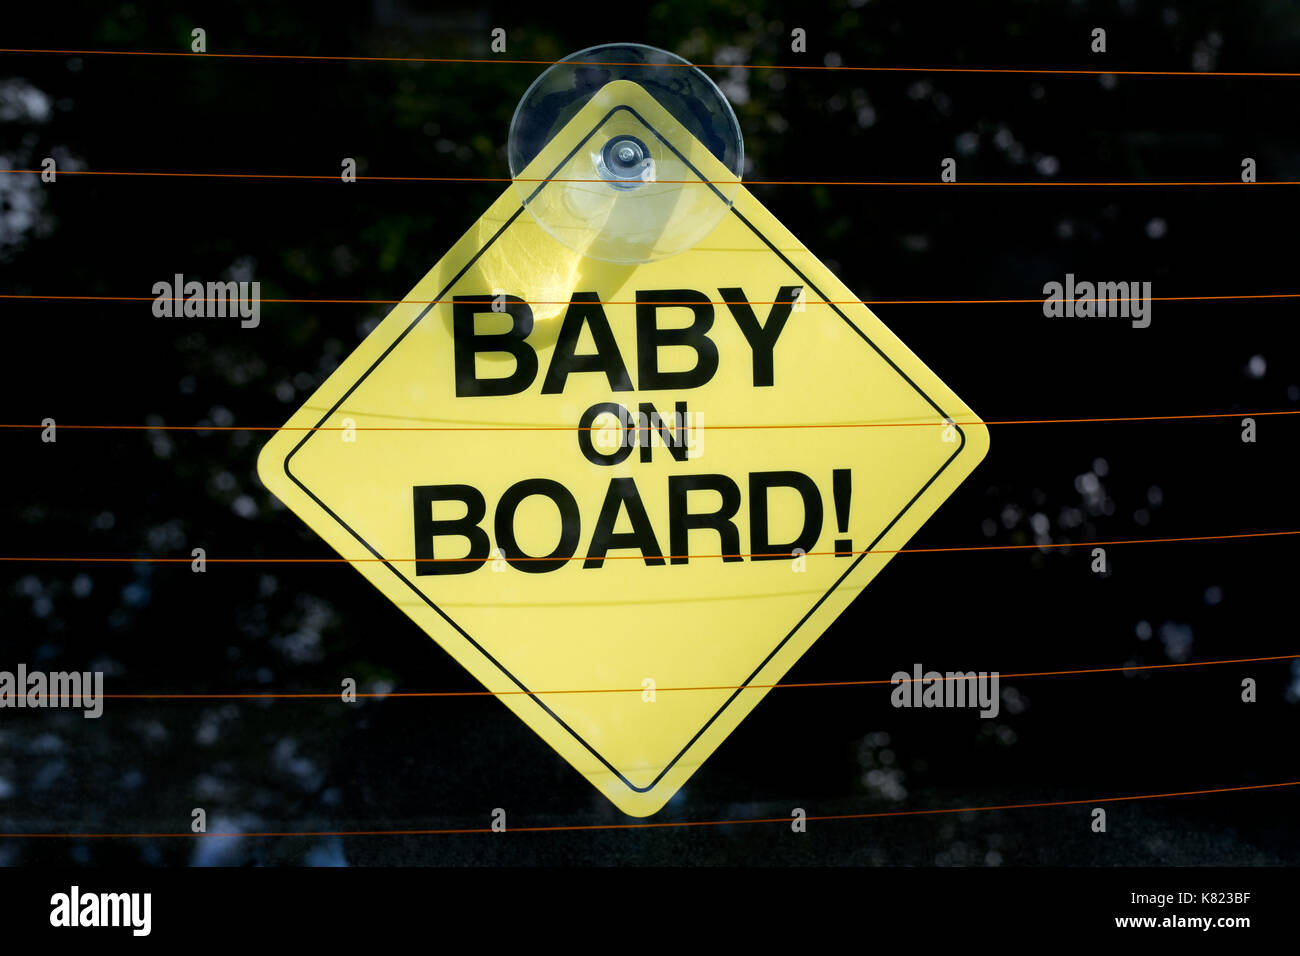 A sign shot through the rear window of a car indicating there is a baby on board in the vehicle. - Stock Image